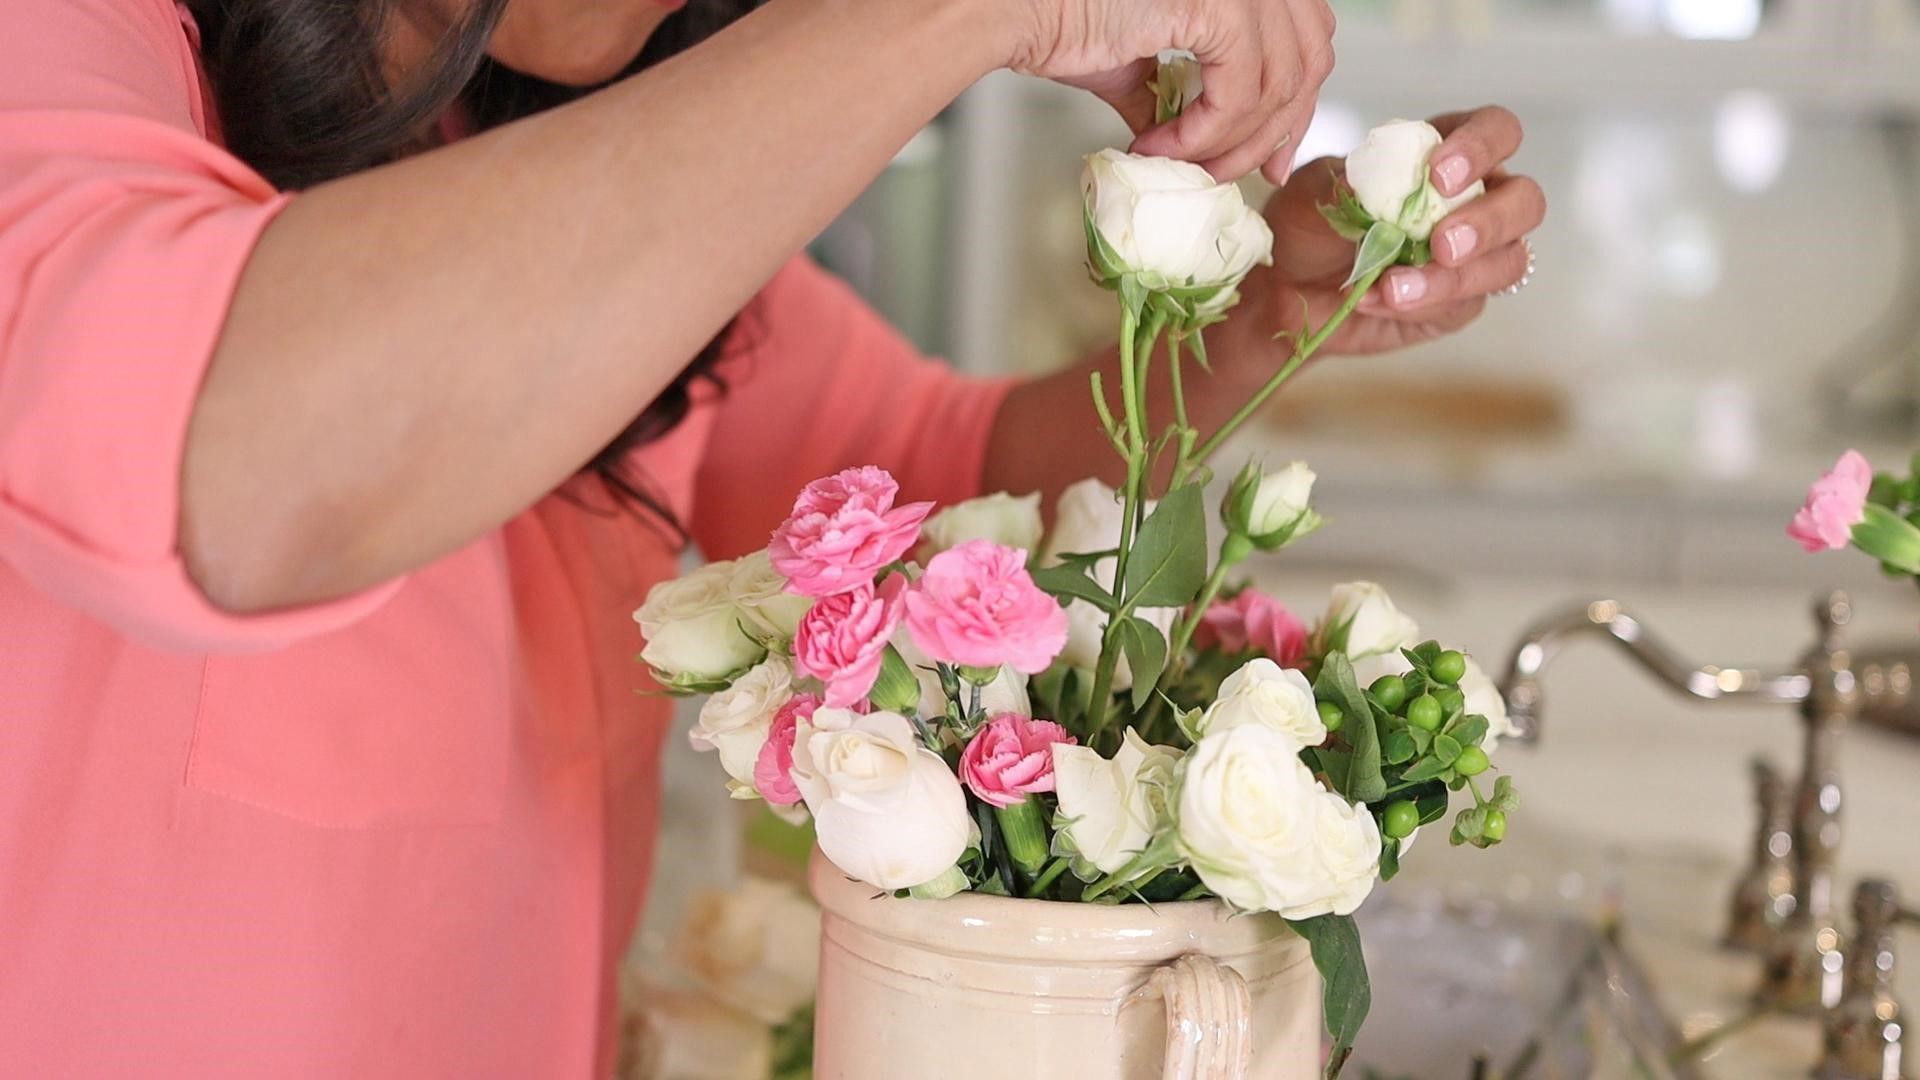 Using a rustic vessel as a vase for red fresh flowers